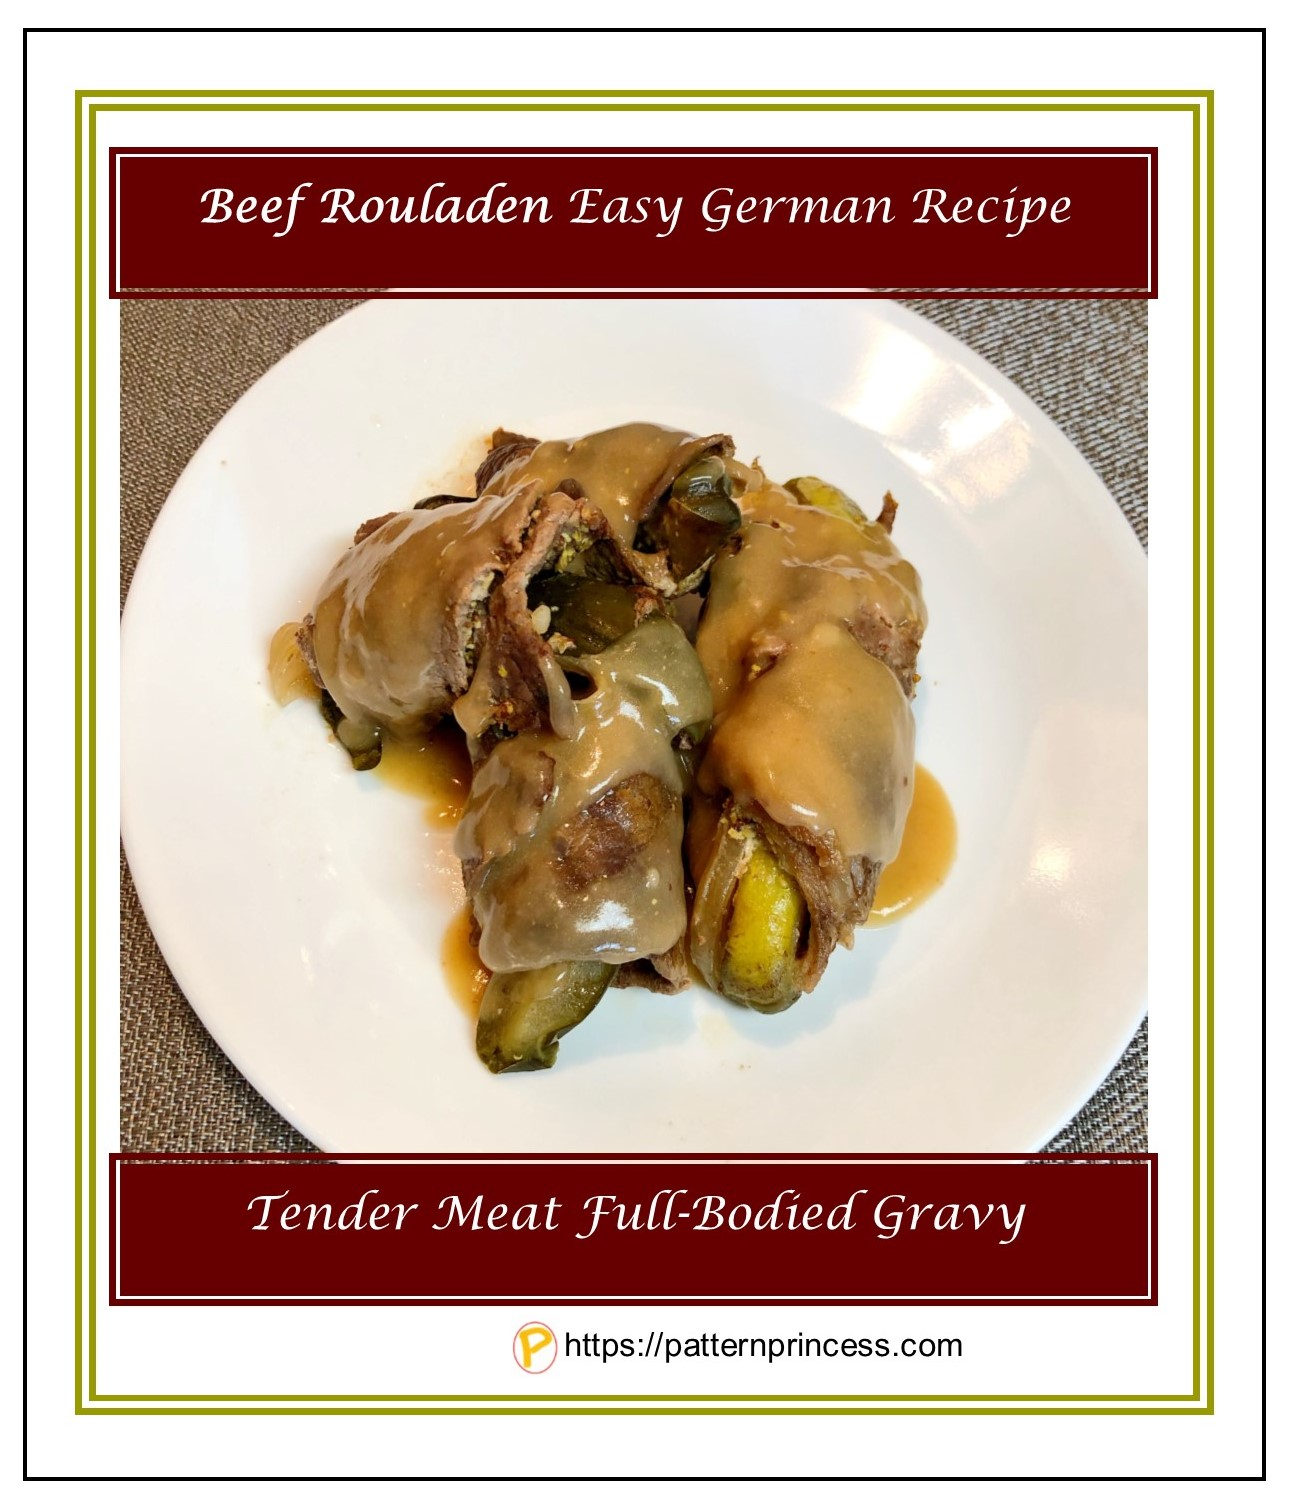 Beef Rouladen Easy German Recipe